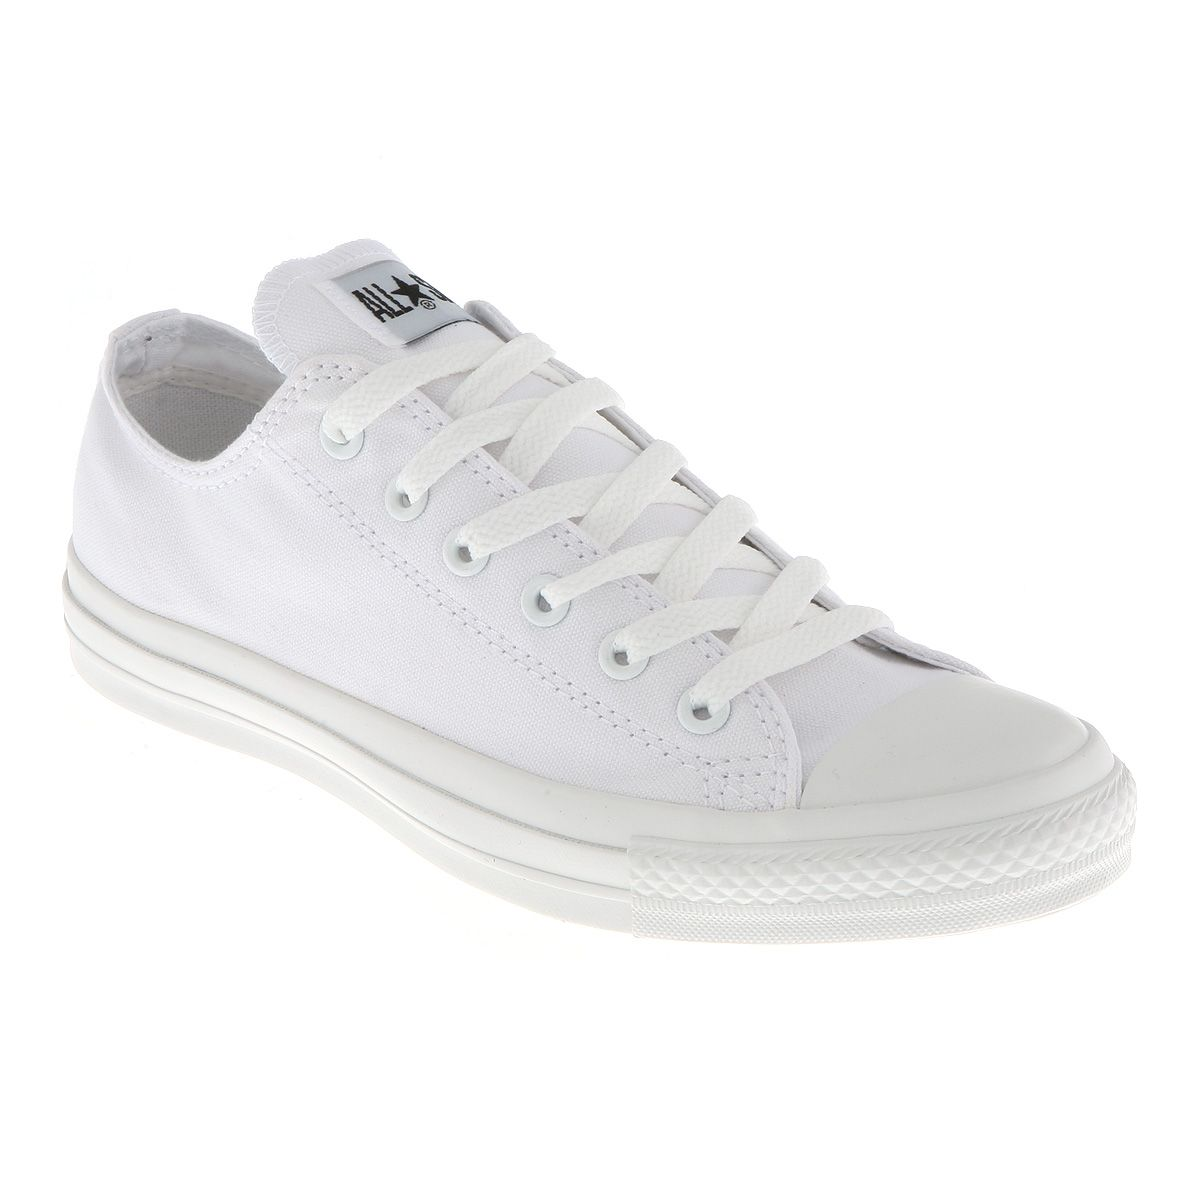 9028bbea16ca Converse ALL STAR OX LOW WHITE MONO CANVAS EXCLUSIVE Shoes - Converse  Trainers - Office Shoes